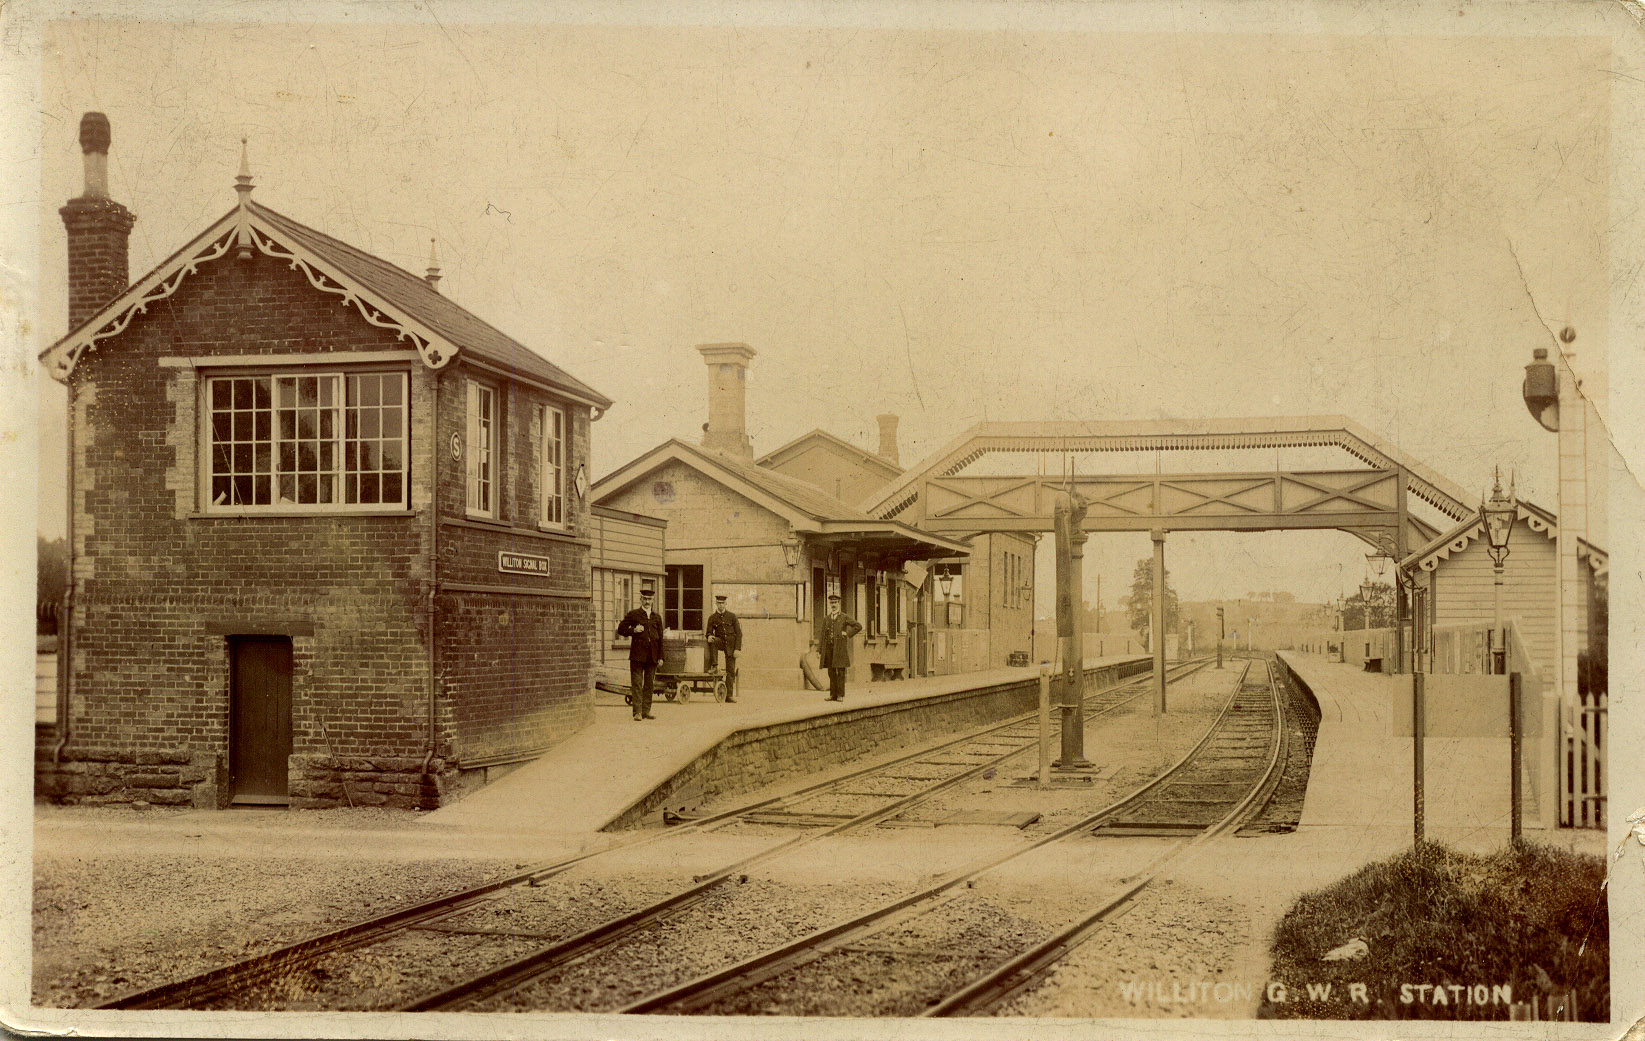 c1900 - Williton Station. ©The John Alsop Collection